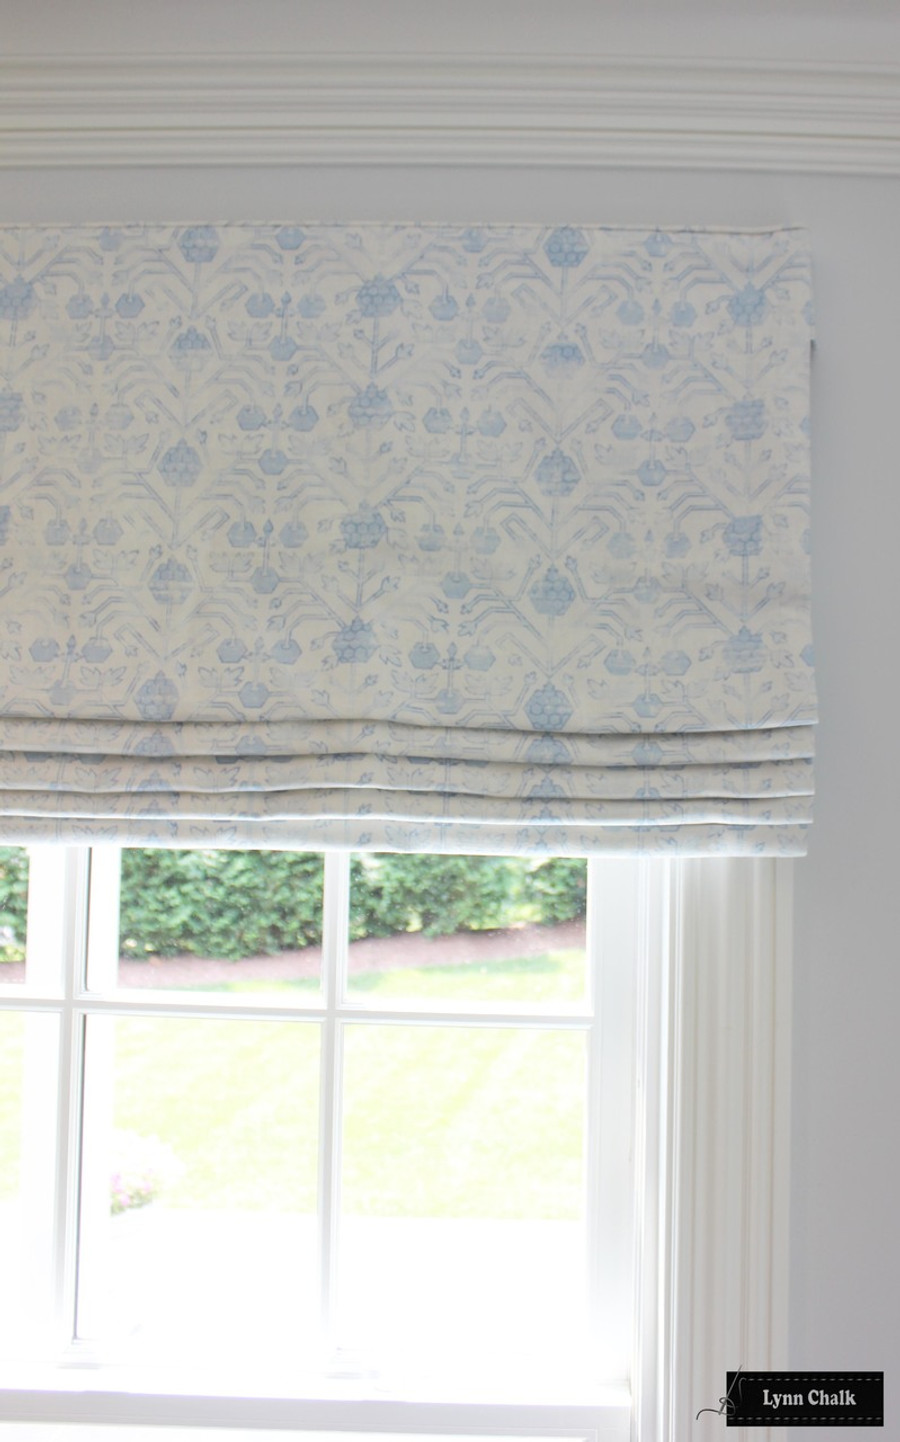 Zak & Fox Khotan Custom Drapes (shown in Rubio-comes in other colors)